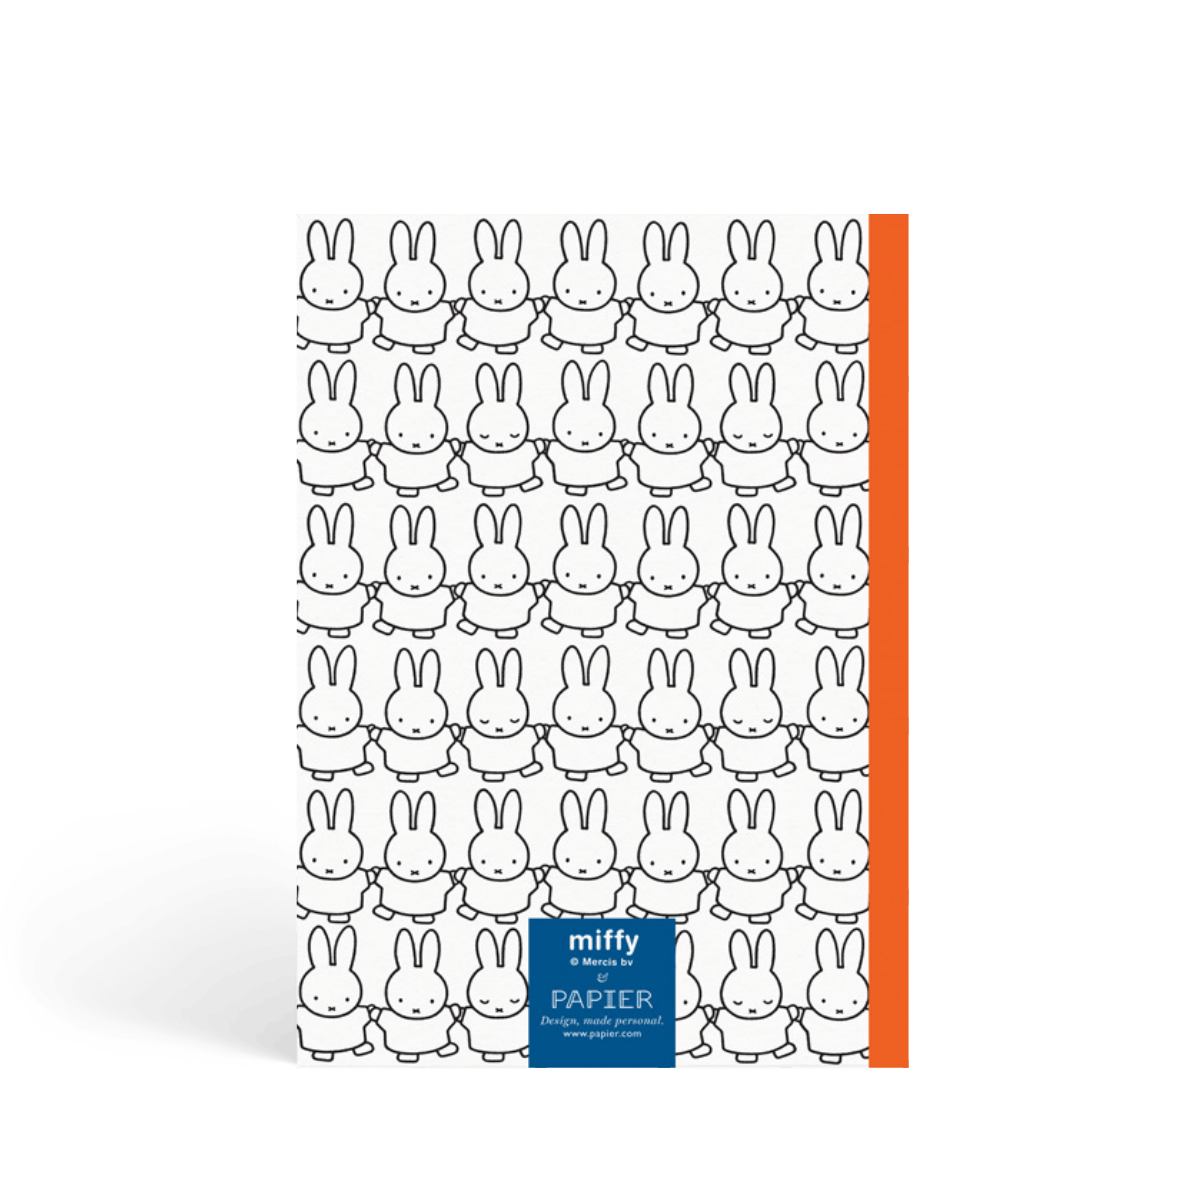 Https%3a%2f%2fwww.papier.com%2fproduct image%2f96782%2f5%2fmiffy s diary 24268 back 1573643106.png?ixlib=rb 1.1